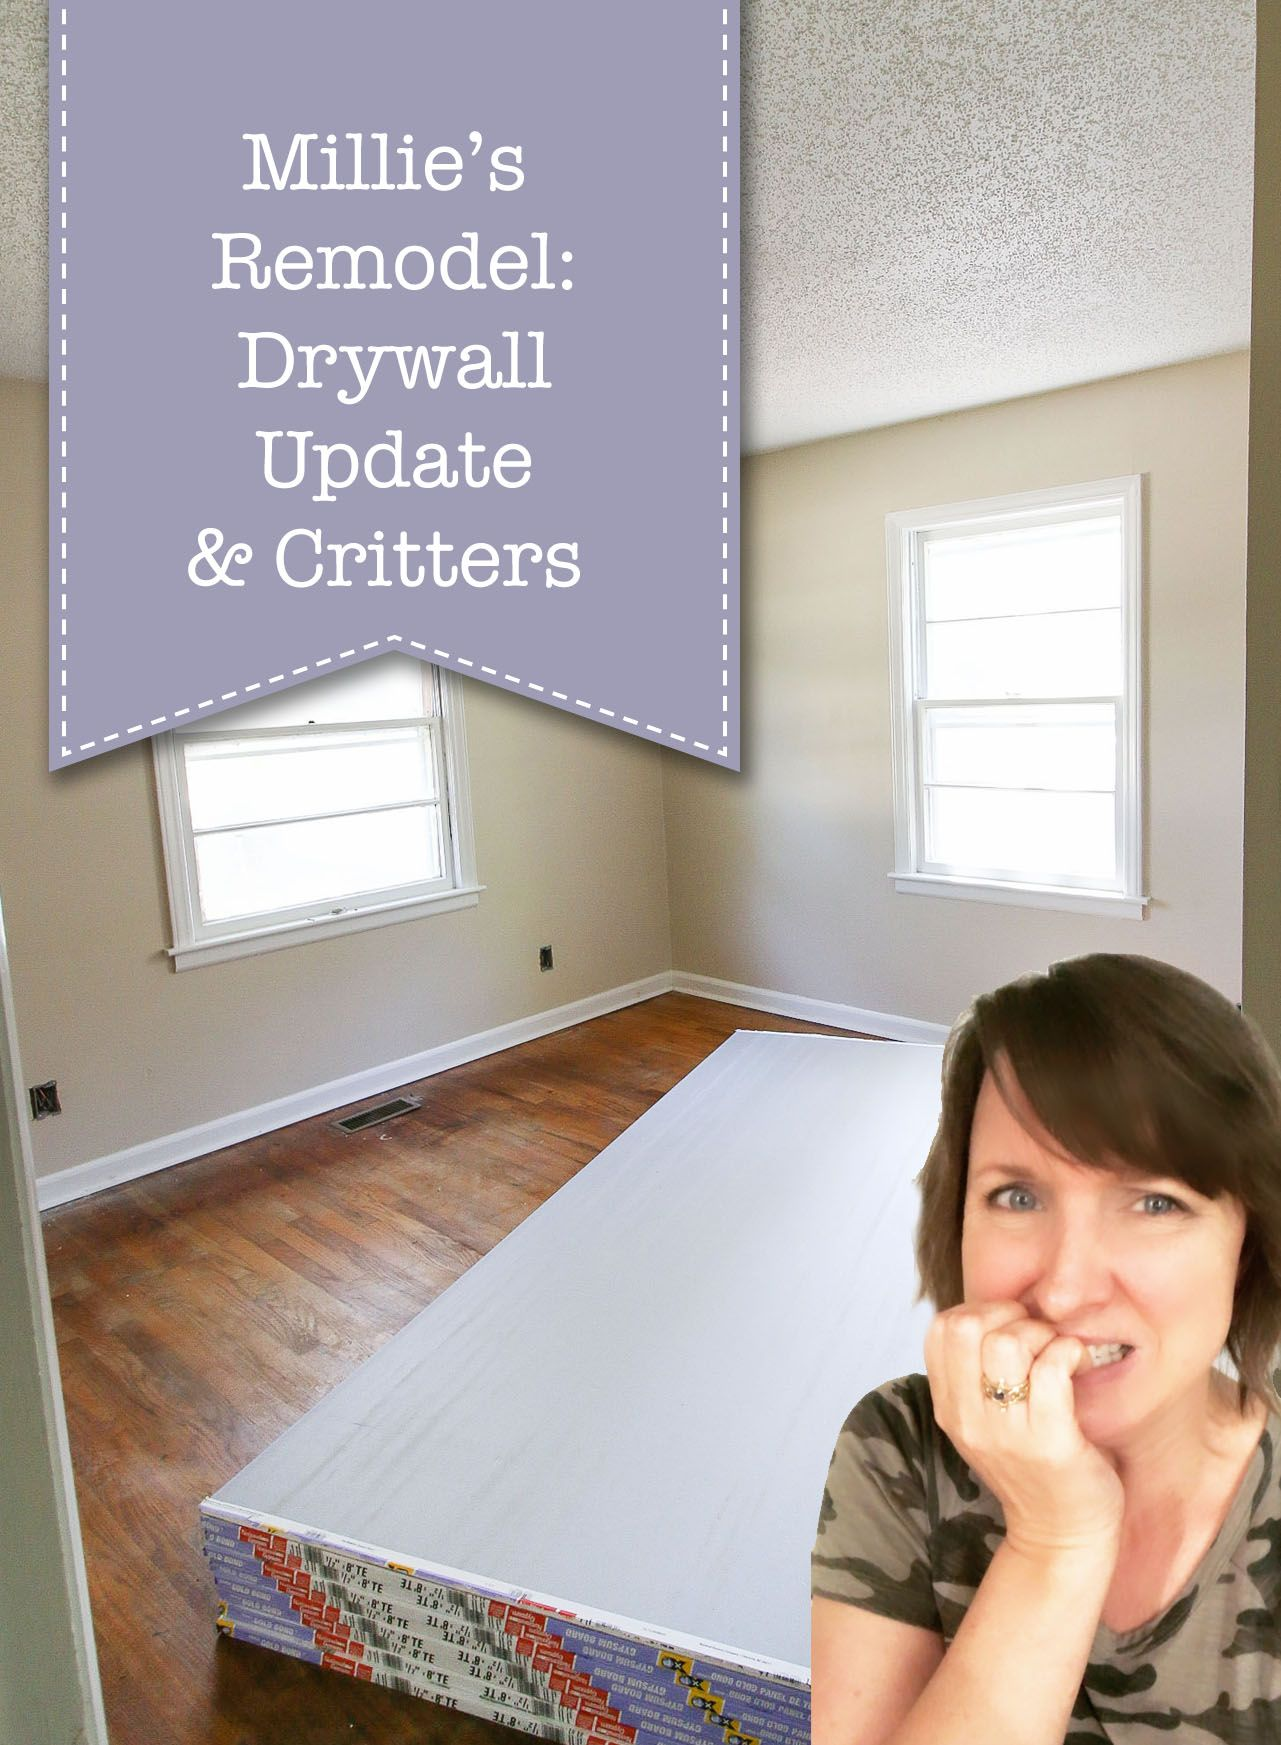 Millie S Remodel Drywall Update Critters In 2020 Drywall Installation Pocket Door Installation Remodel